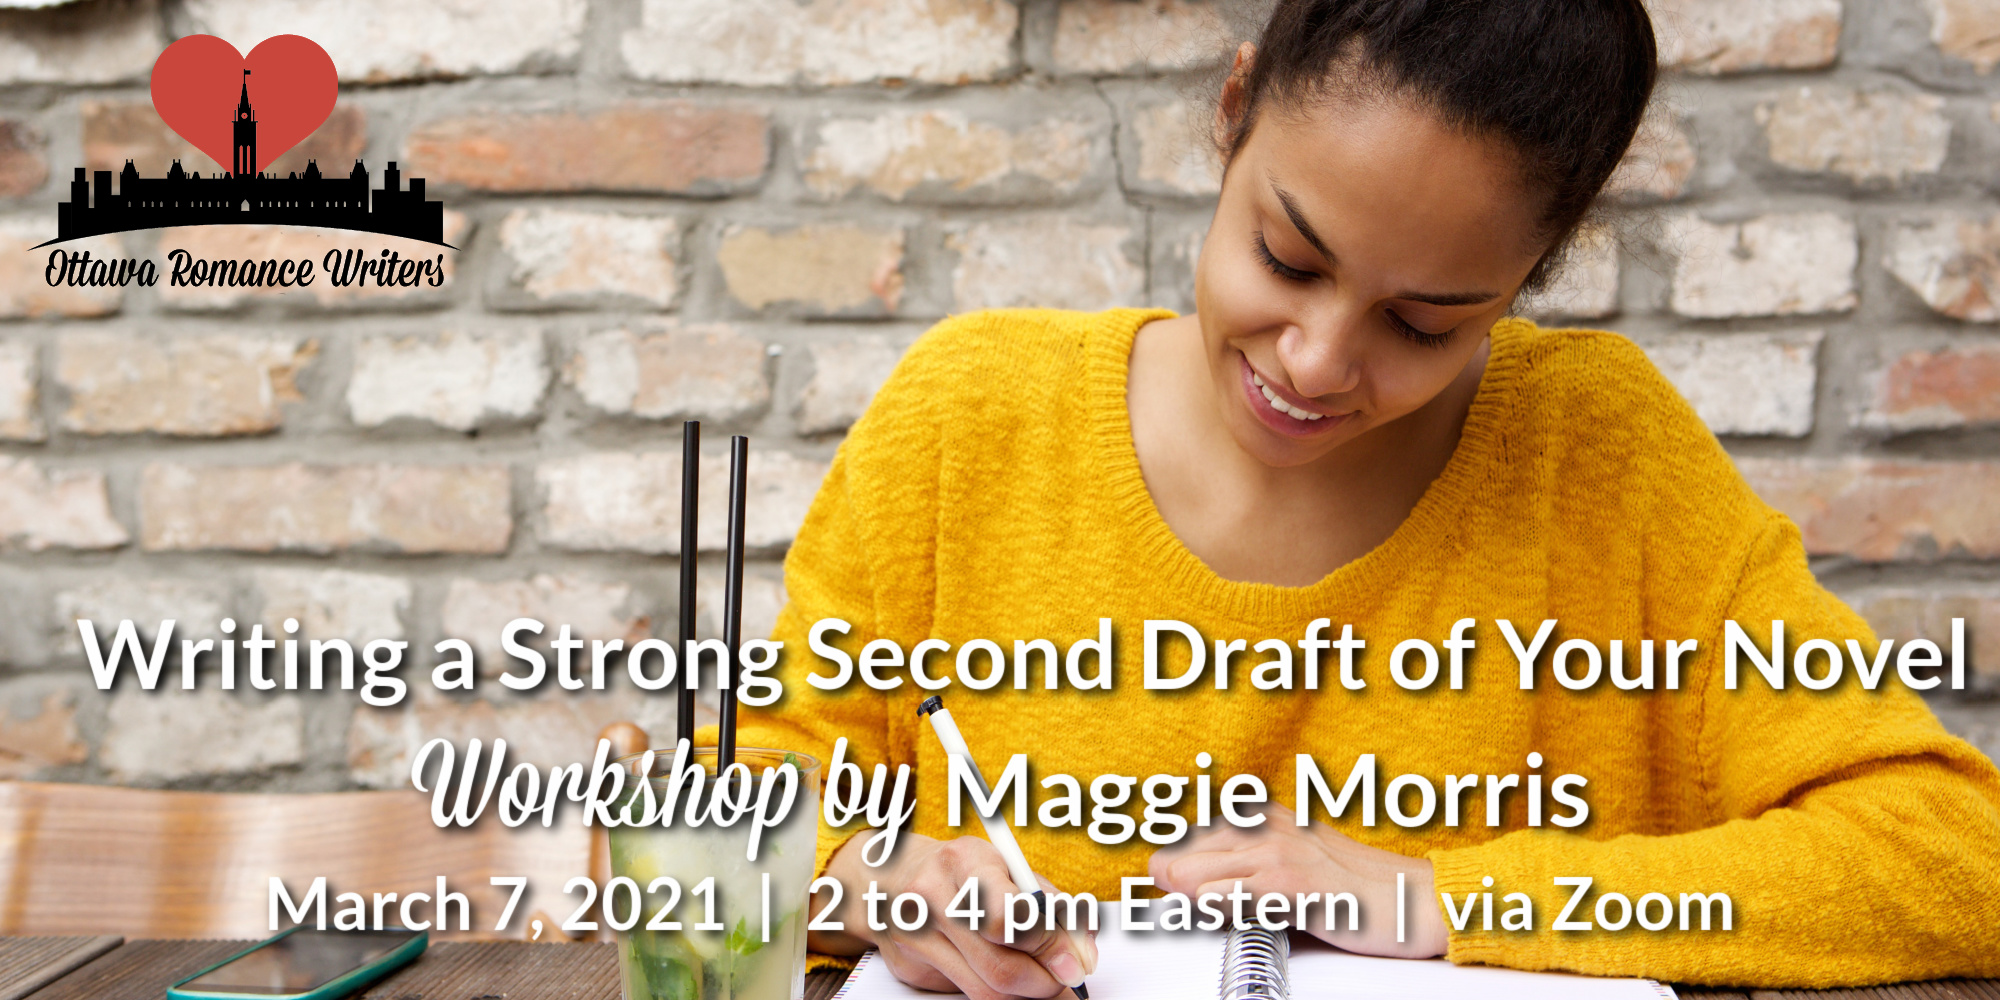 March 7, 2021 Workshop – Writing a Strong Second Draft of Your Novel